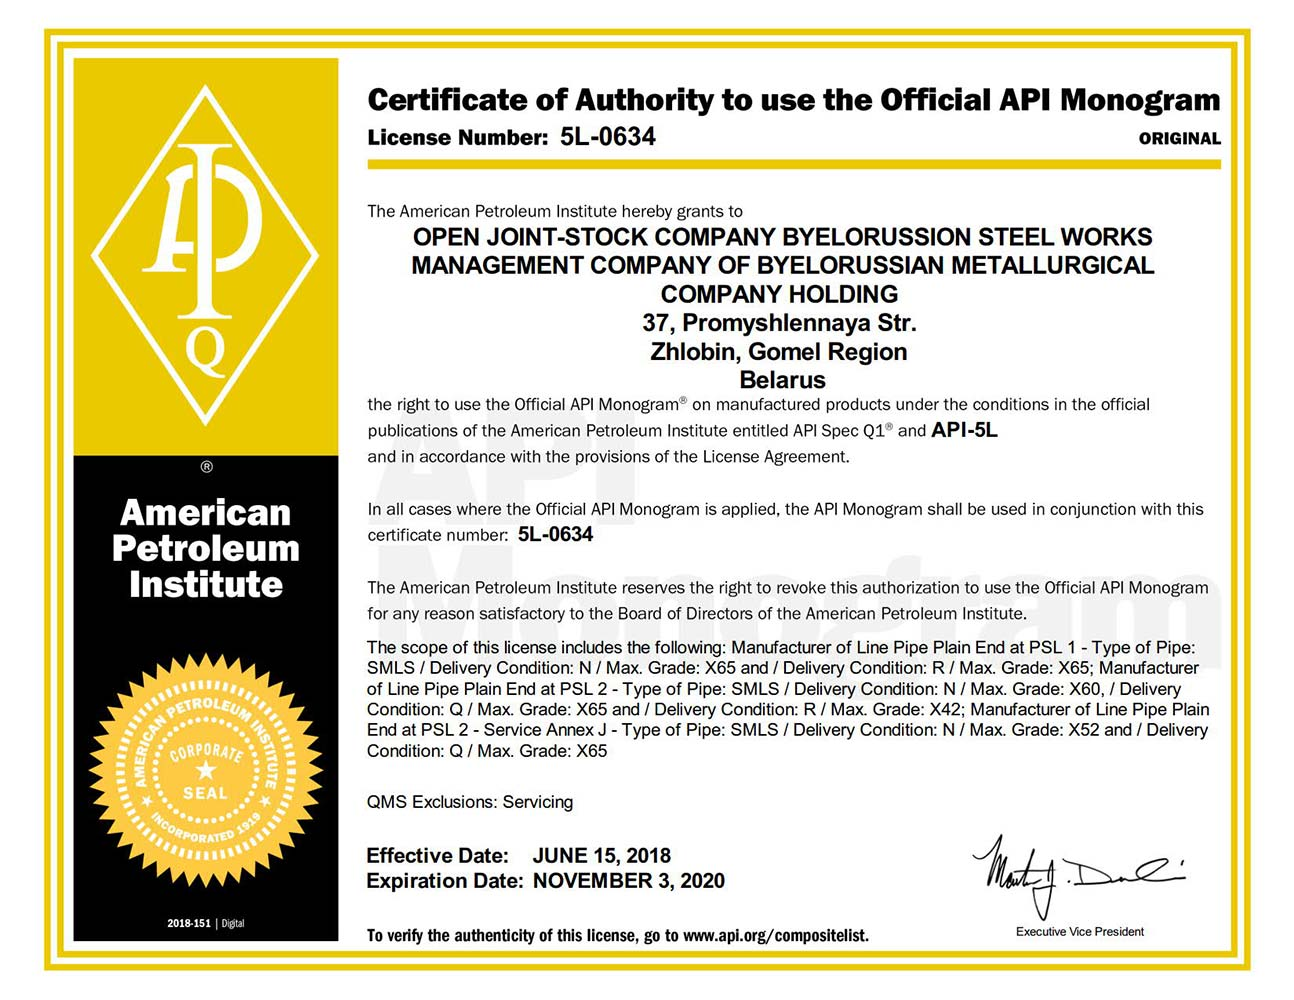 Certificate of Authority № 5L-0634  to use the API Monogram Spec 5L – manufacture of Line Pipe Plain End at PSL 1 – Type of Pipe: SMLS/Delivery Condition N/Max. Grade: X65and/ Delivery Condition R/Max/ Grade X65; manufacture of Line Pipe Plain End at PSL 2 – Service Annex J – Type of Pipe: SMLS/ Delivery Condition: N /  Max. Grade: X52 and/ Delivery Condition: Q/ Max. Grade: X65.